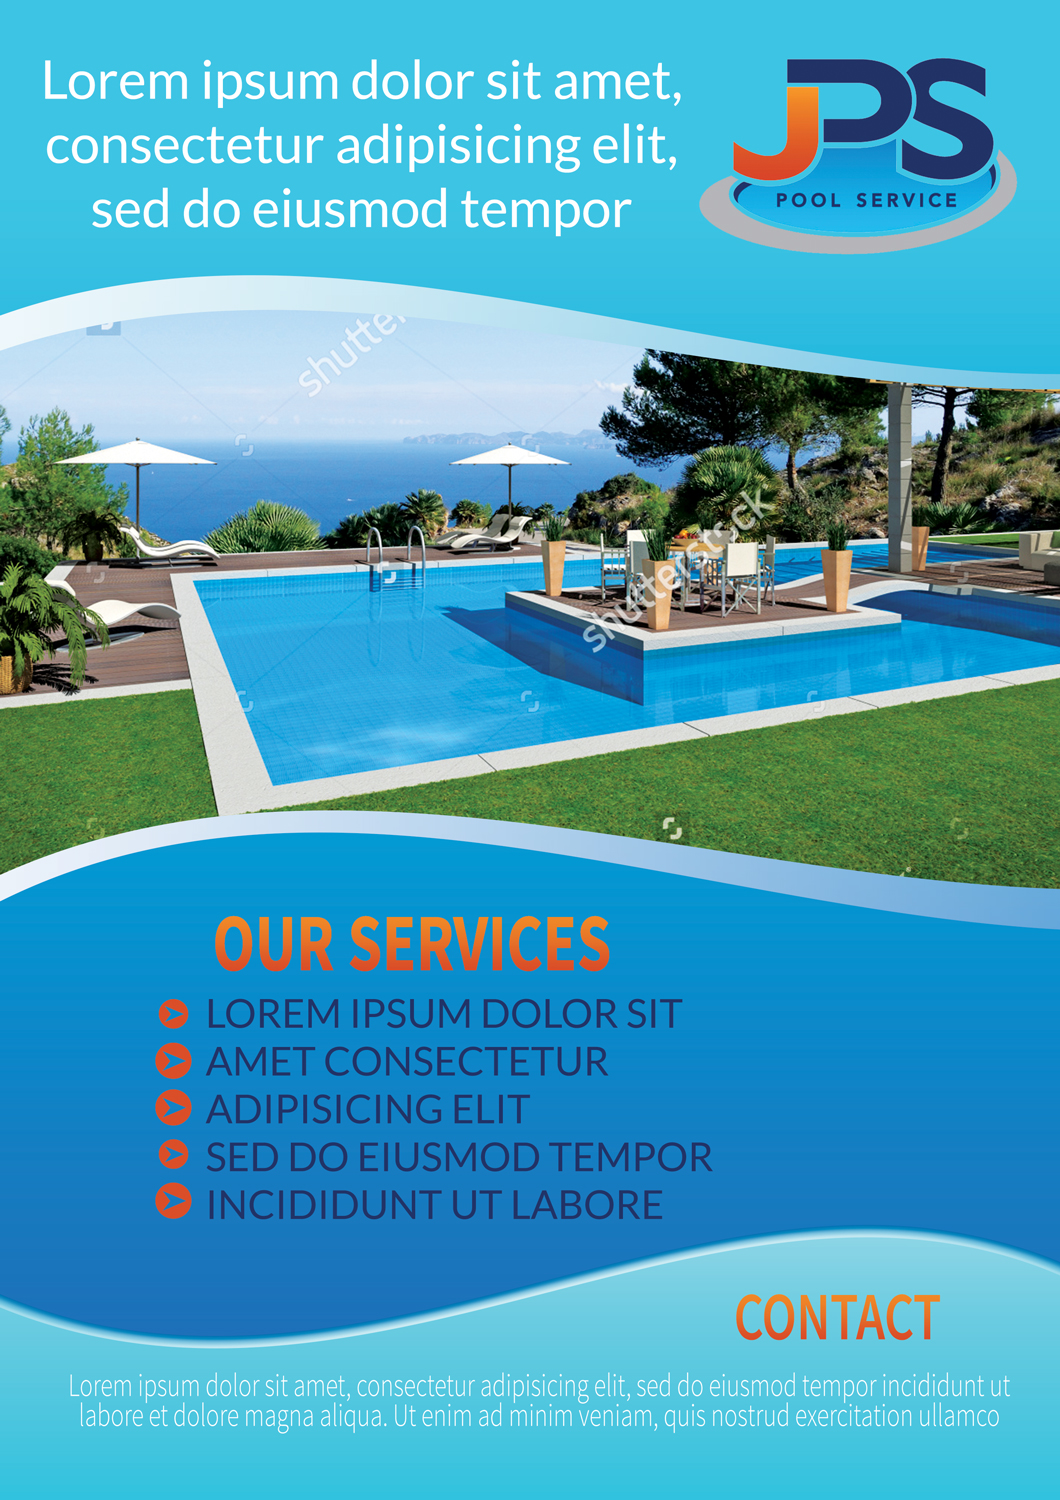 Pool service ad Cool Summer Image Of Pool Service Ad Scottsdale Scottsdale Daksh Mapad Swimming Pool Services In West Island Dakshco Pool Service Ad Scottsdale Scottsdale Daksh Mapad Swimming Pool